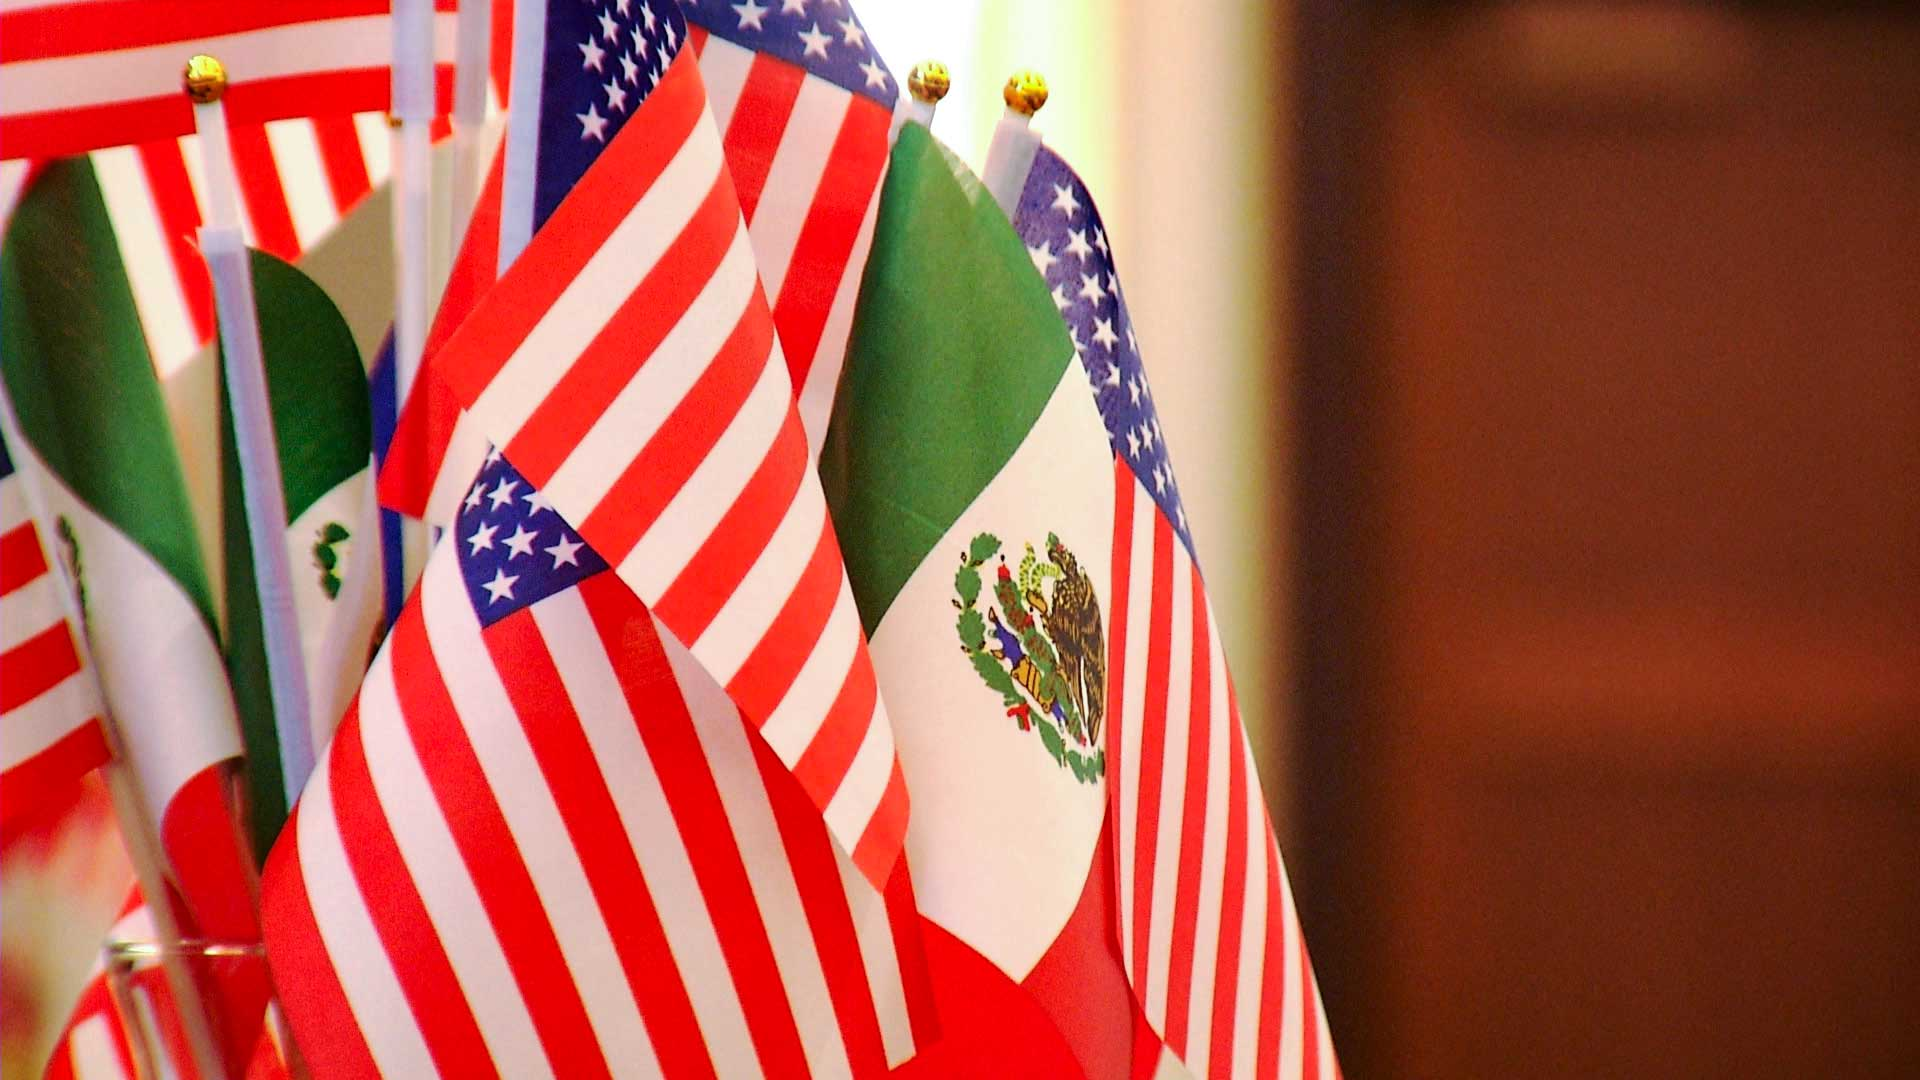 U.S. and Mexico flags.